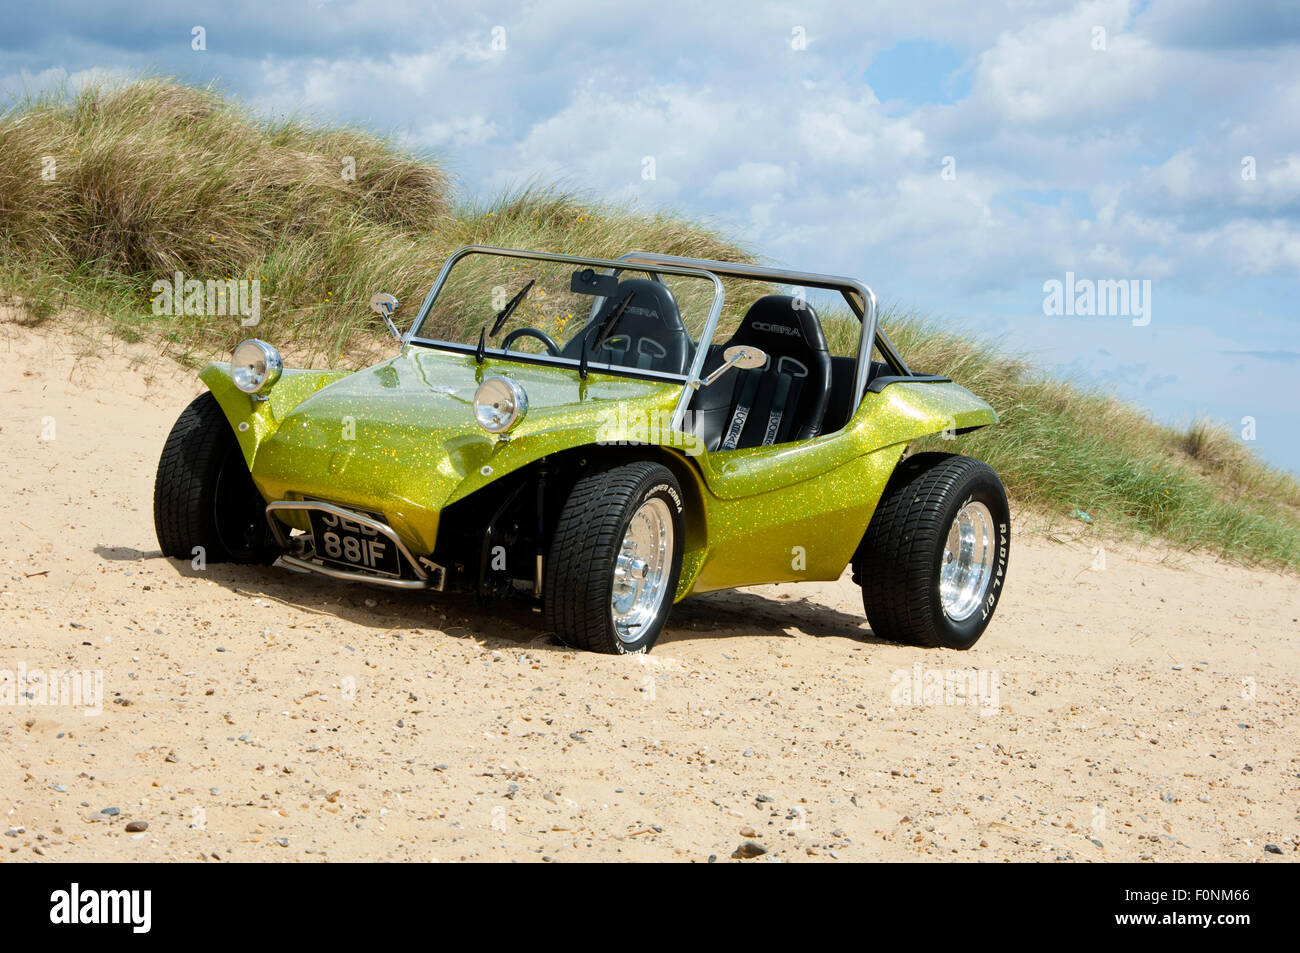 strandbuggy an einem sandstrand vw k fer basis dune buggy auto stockfoto bild 86528686 alamy. Black Bedroom Furniture Sets. Home Design Ideas